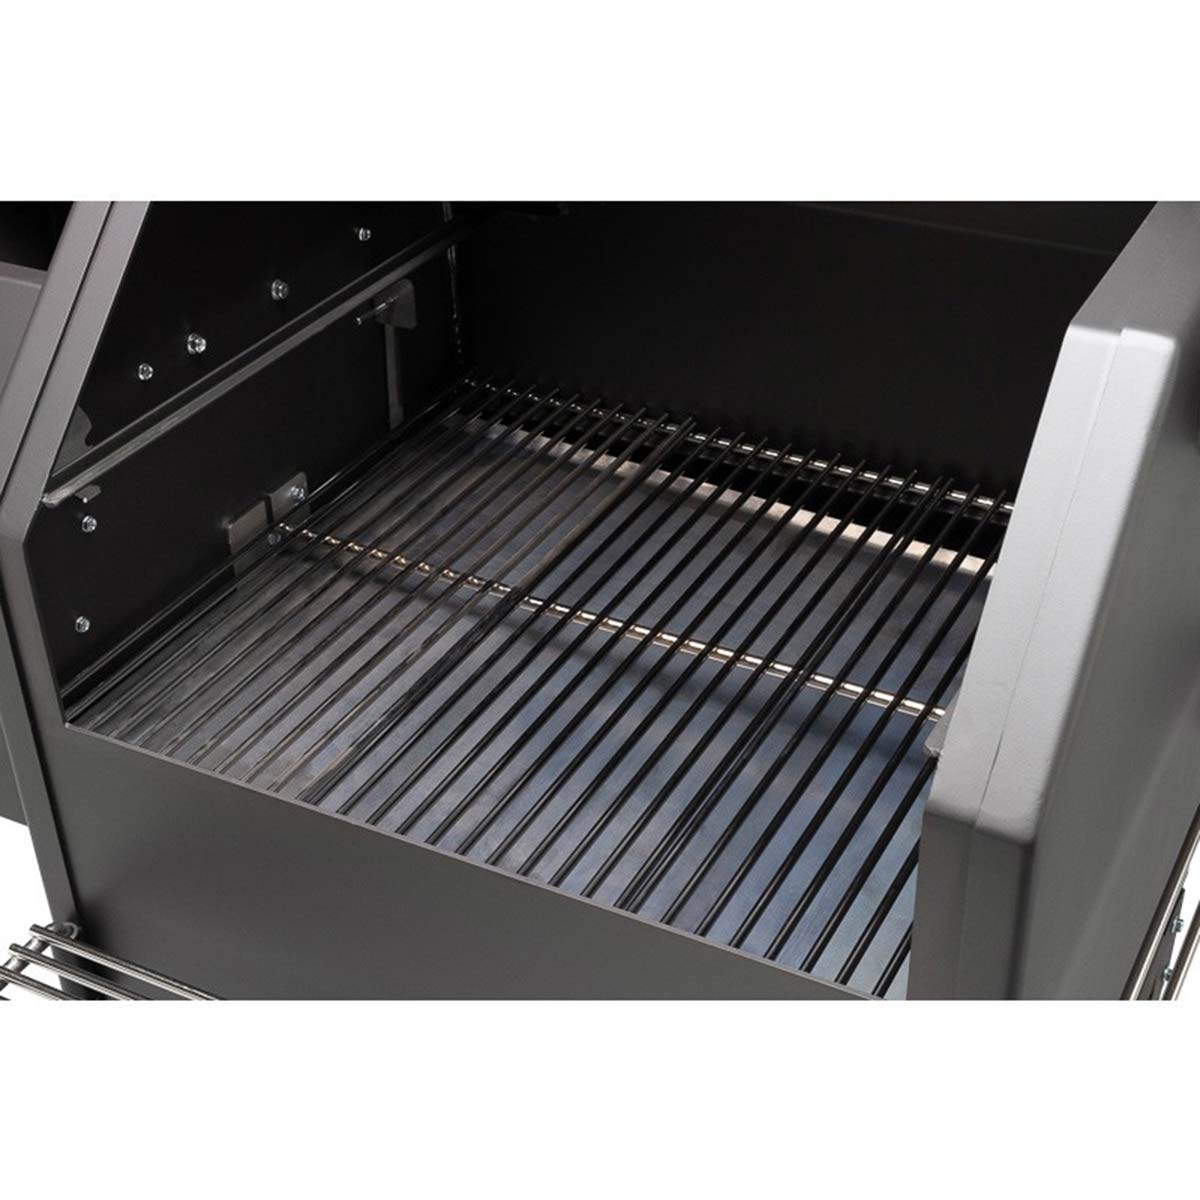 yoder-smokers-ys480s-pellet-grill-acs-wifi-14